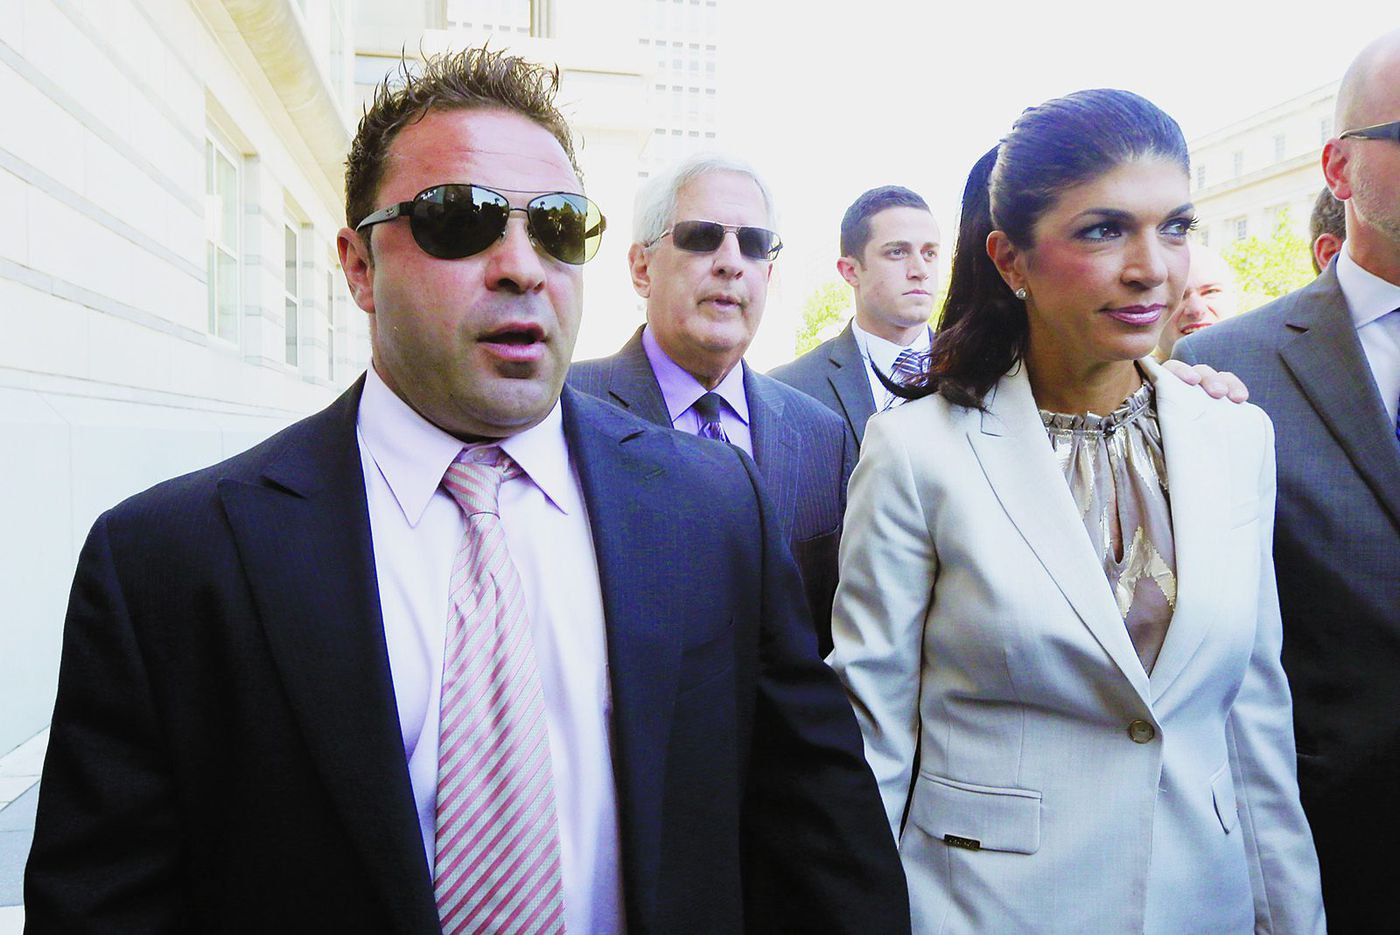 Real Housewives of New Jersey' star Teresa Giudice's husband Joe to be deported to Italy